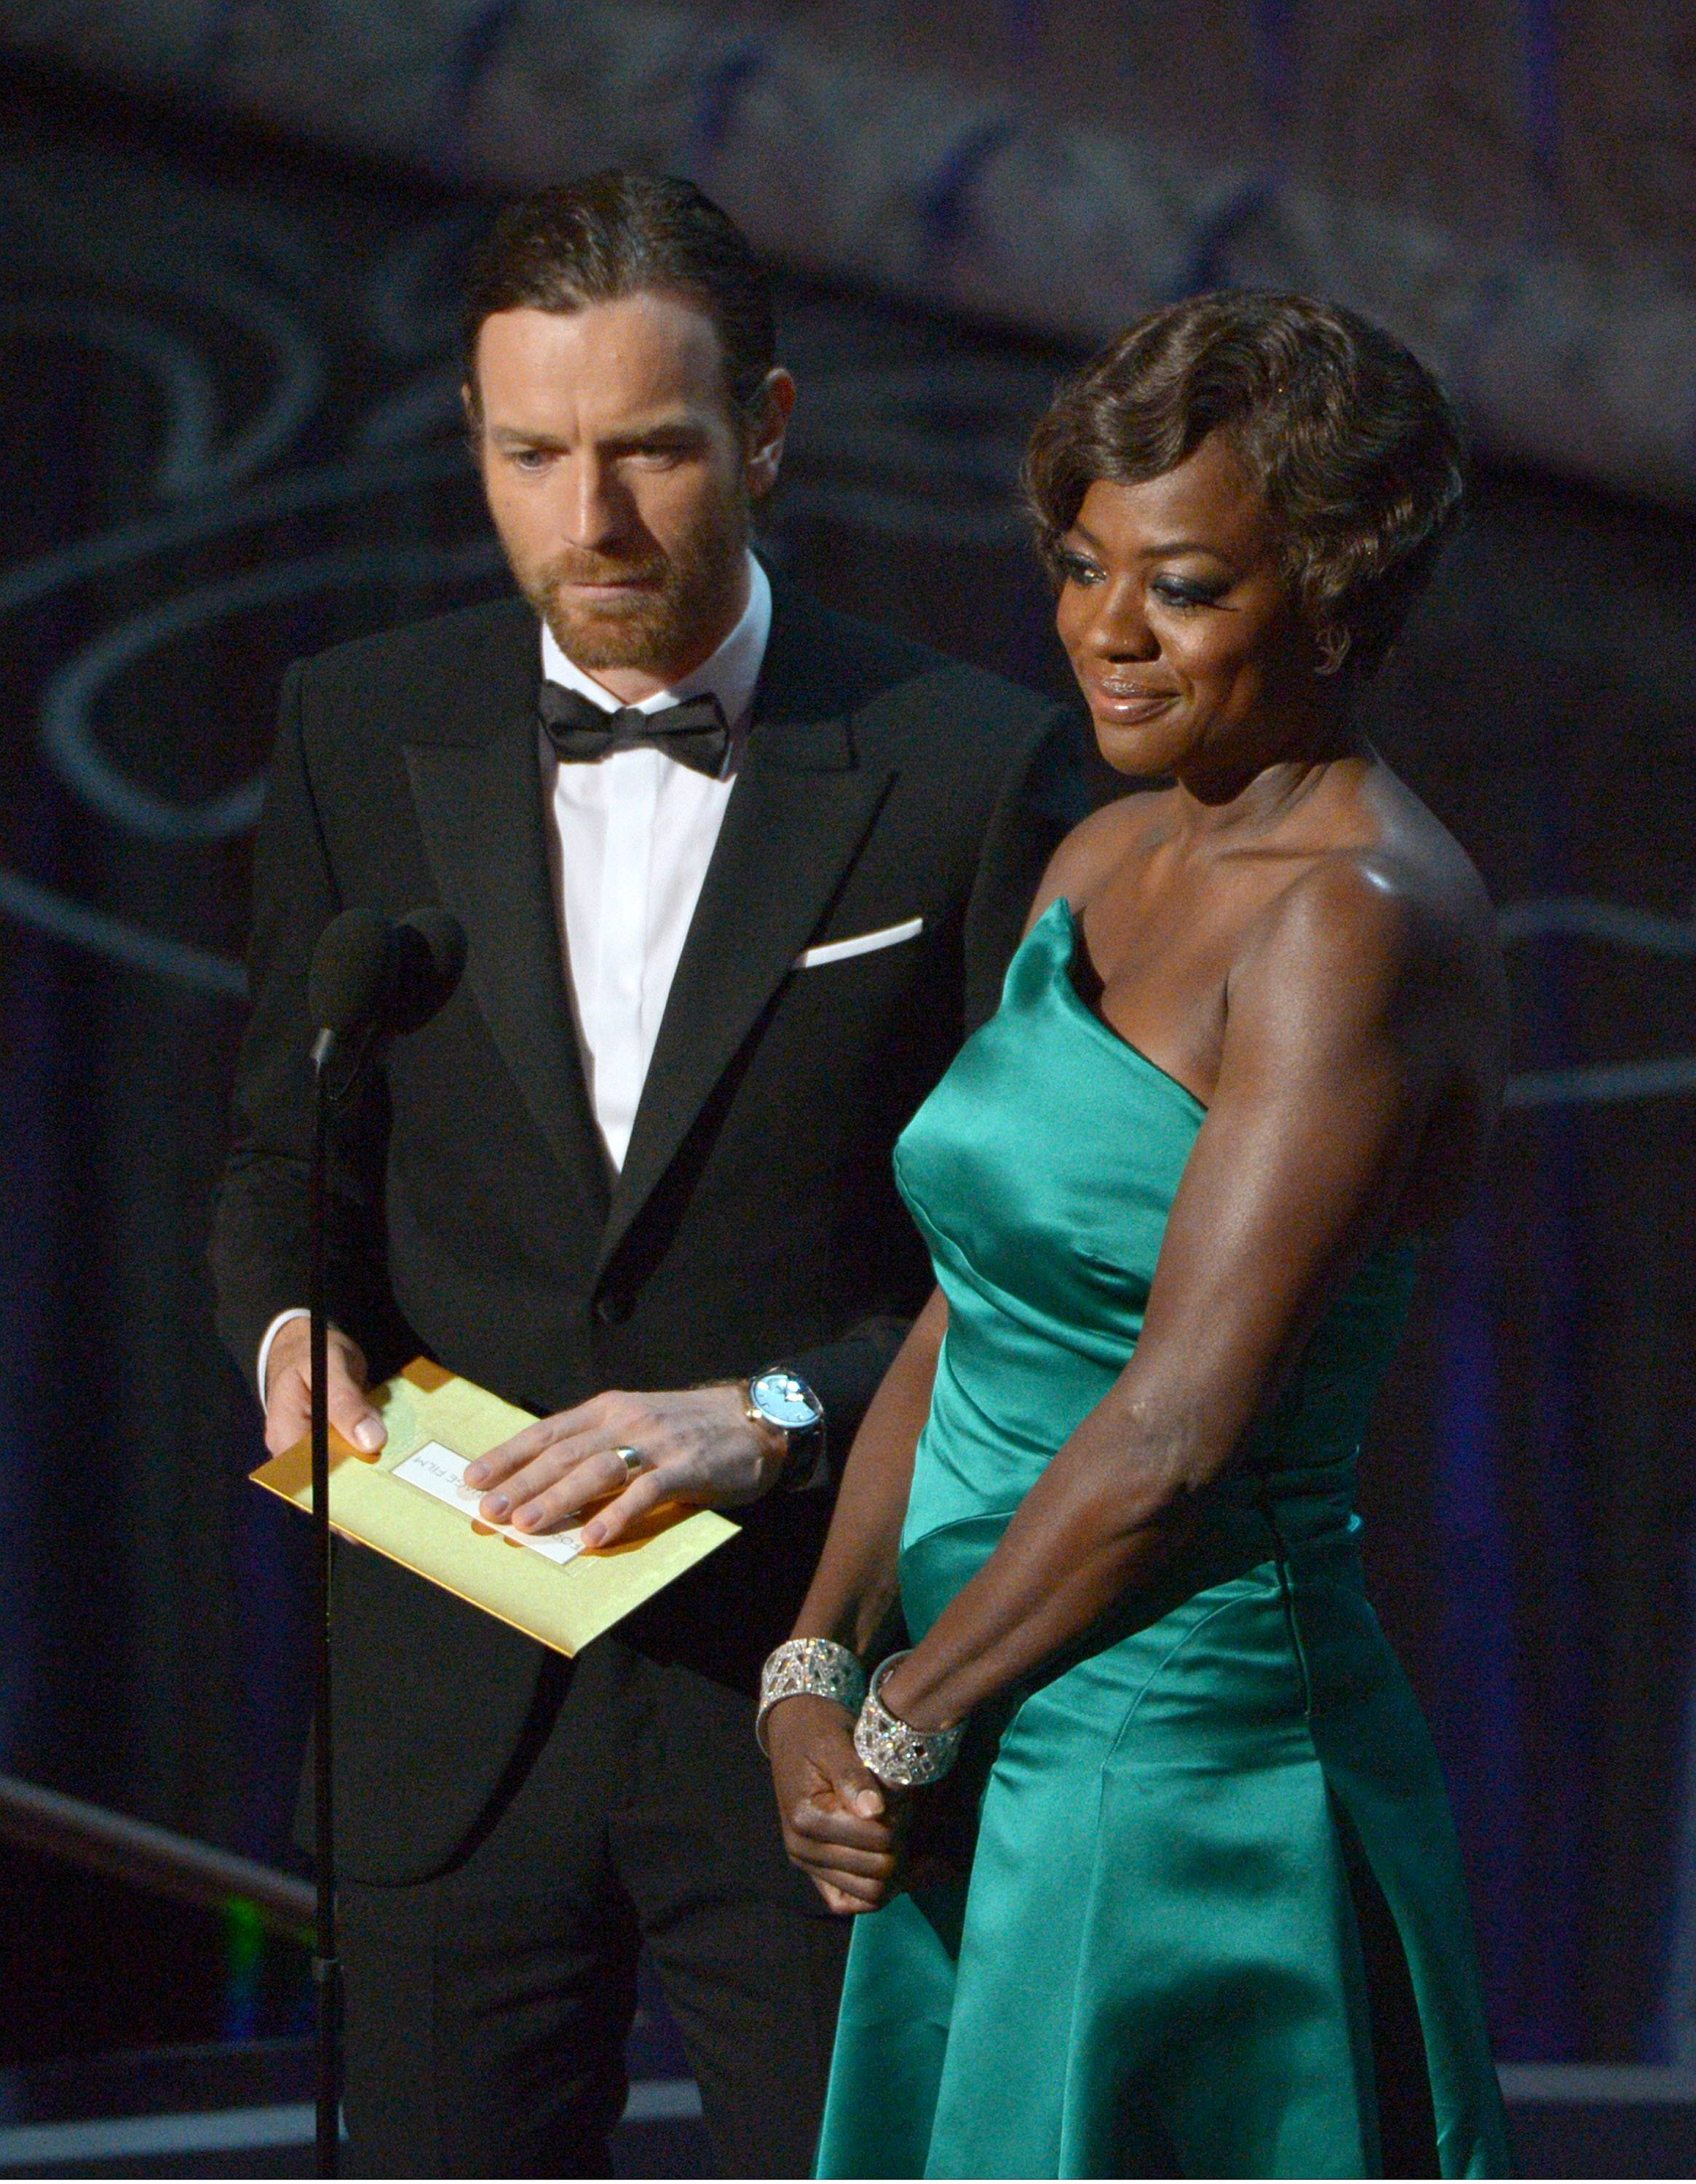 Ewan McGregor, left, and Viola Davis speak on stage during the Oscars.